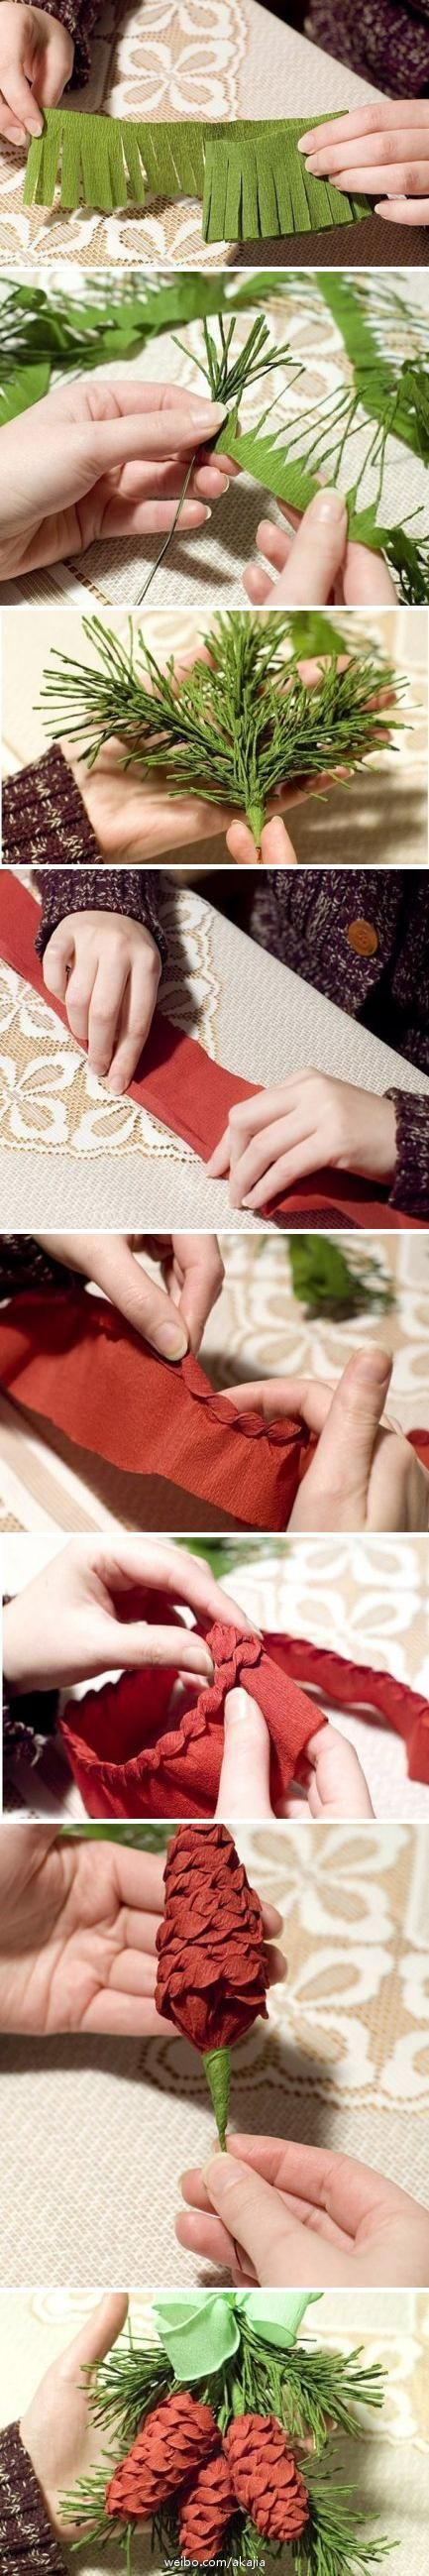 Tutorial for crepe paper for pine cone fir Christmas tree garland? Wreath?